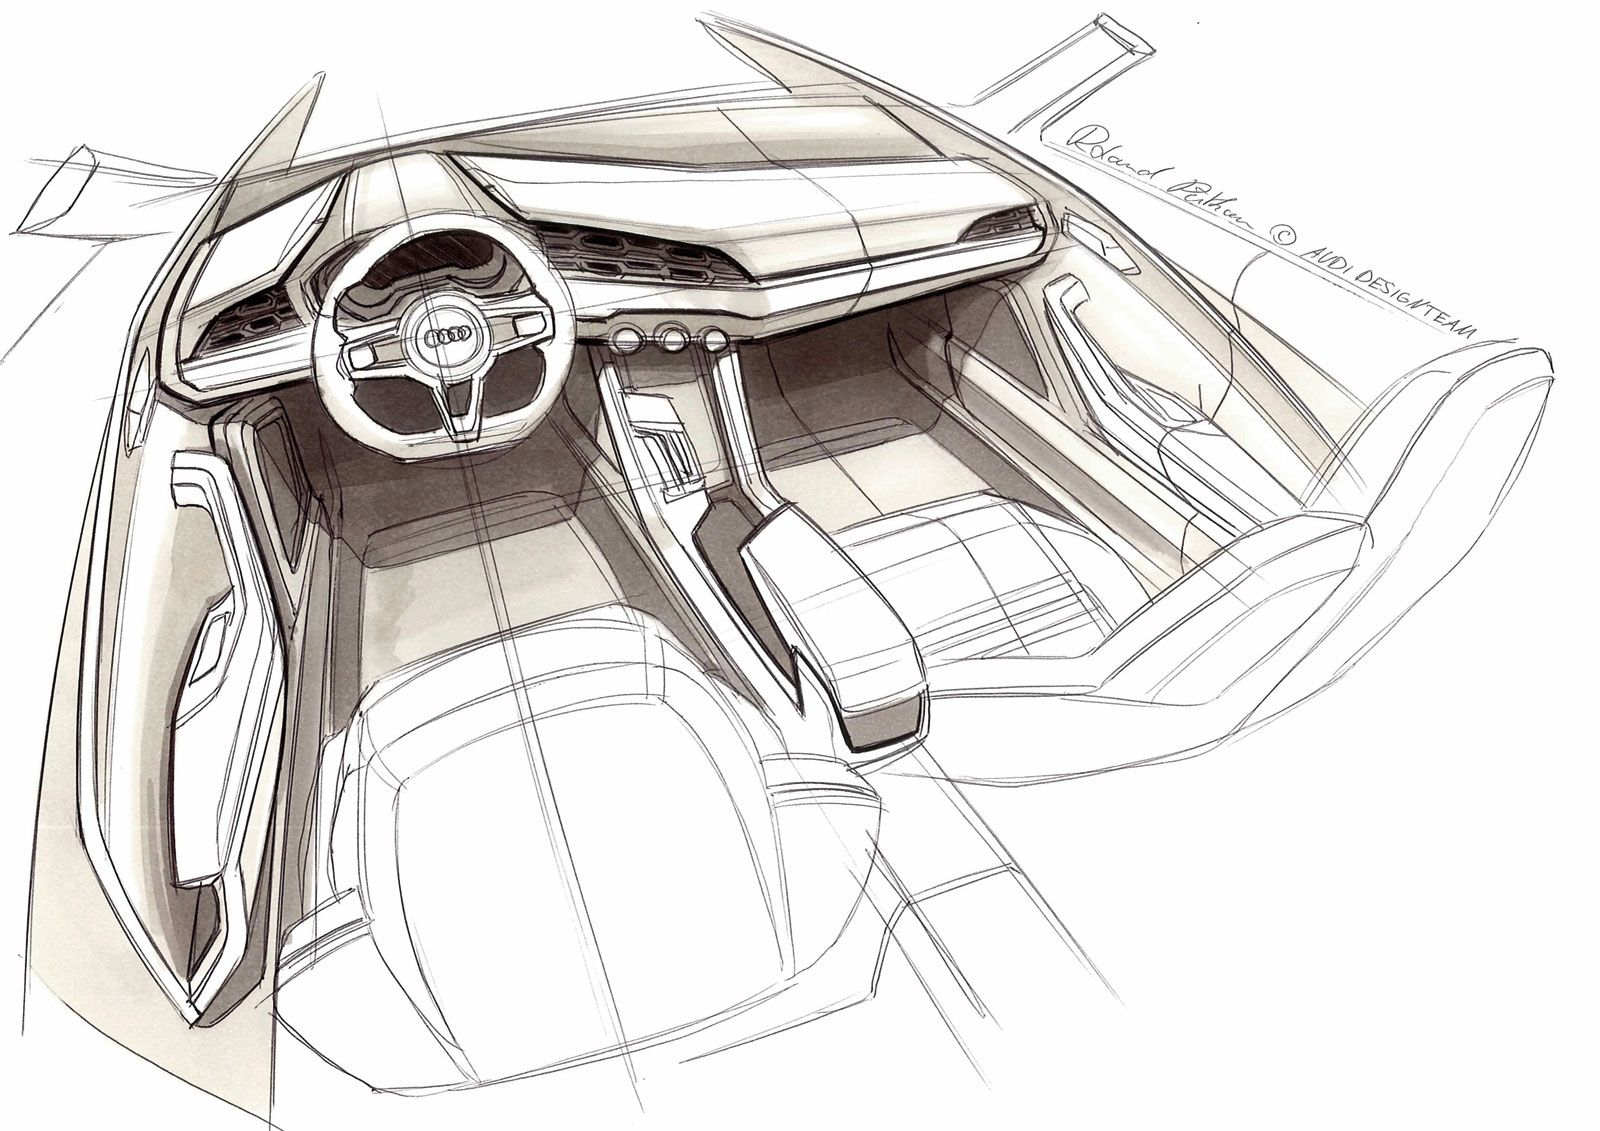 Audi crosslane coupe concept interior design sketch for Interior design sketches